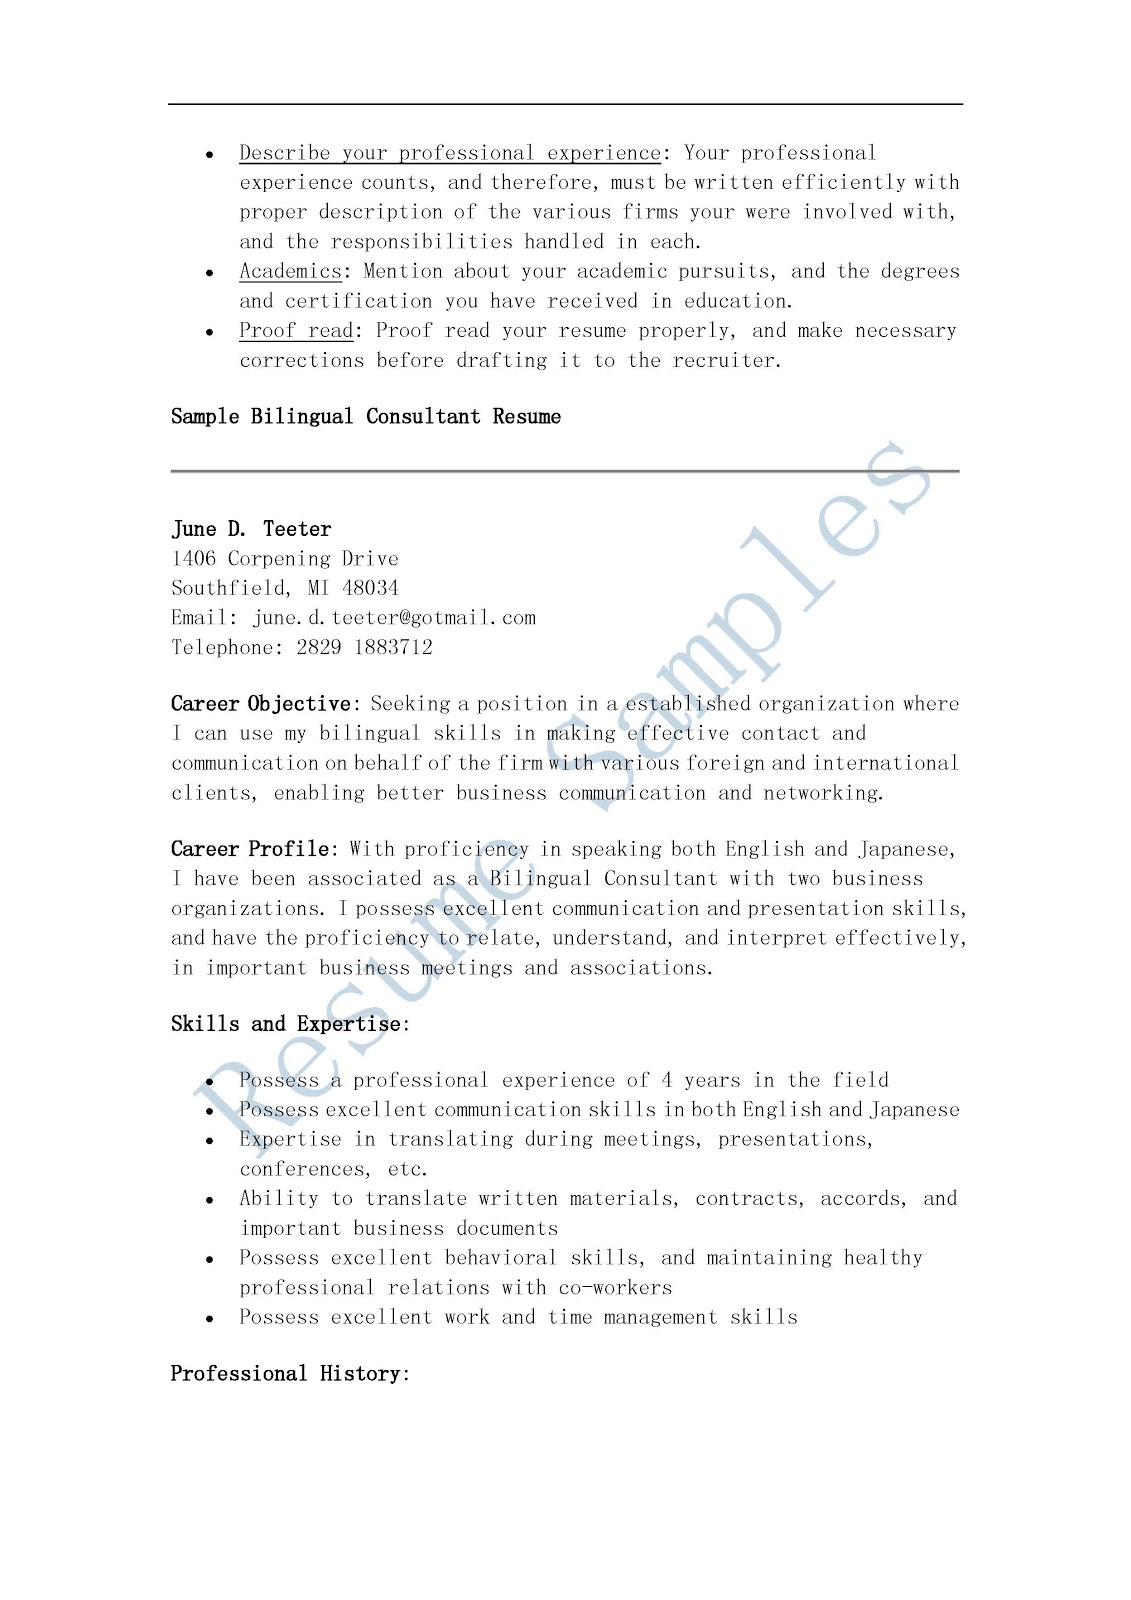 Bilingual Receptionist Resume How To Write Bilingual On Resume Nyustraus Org